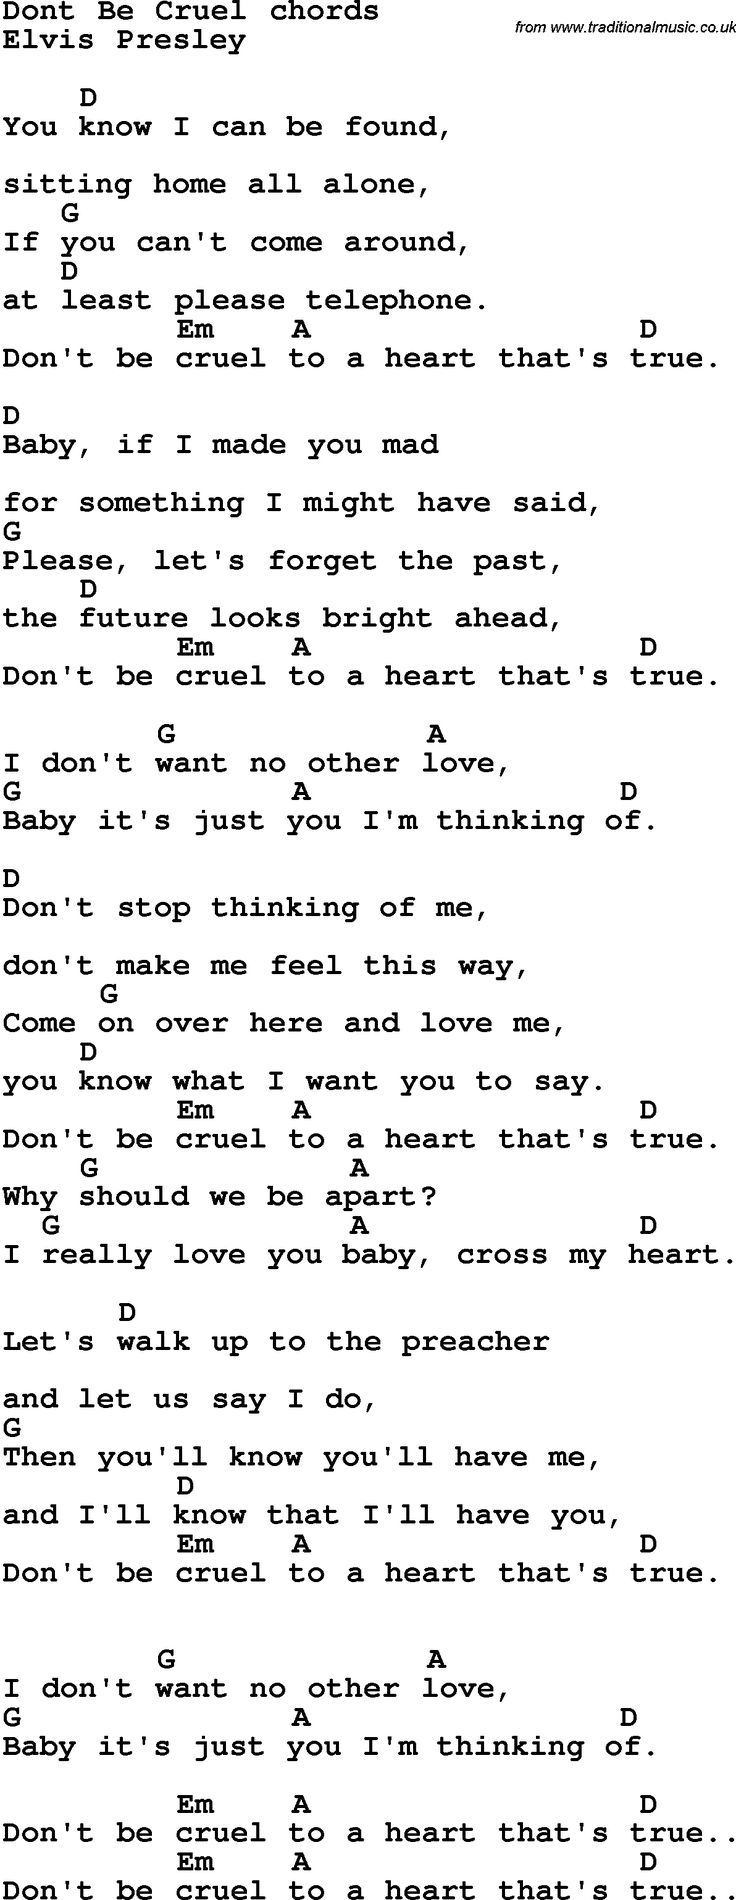 Song Lyrics with guitar chords for Don't Be Cruel